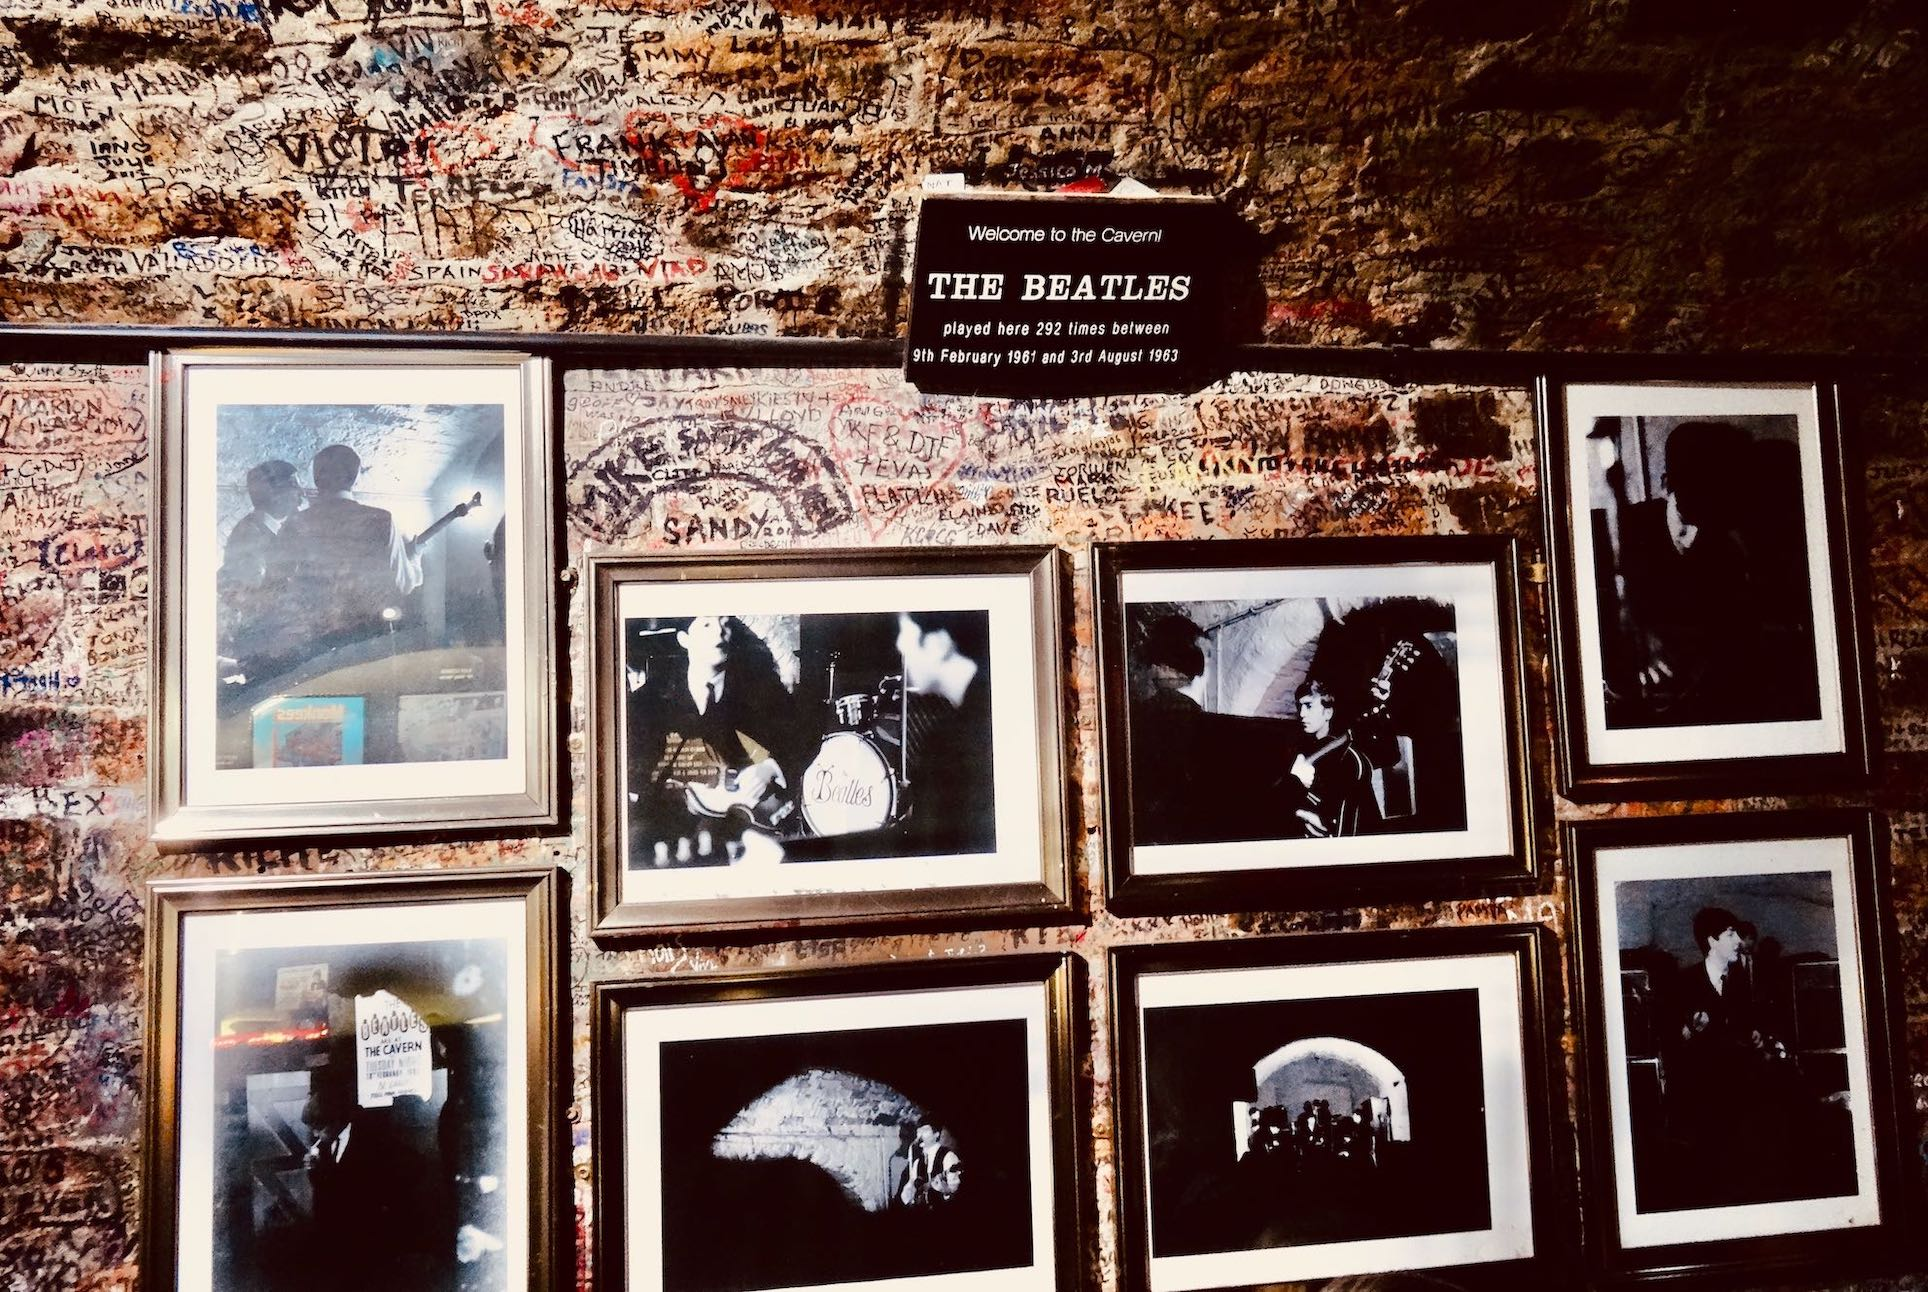 Inside the Cavern Club in Liverpool